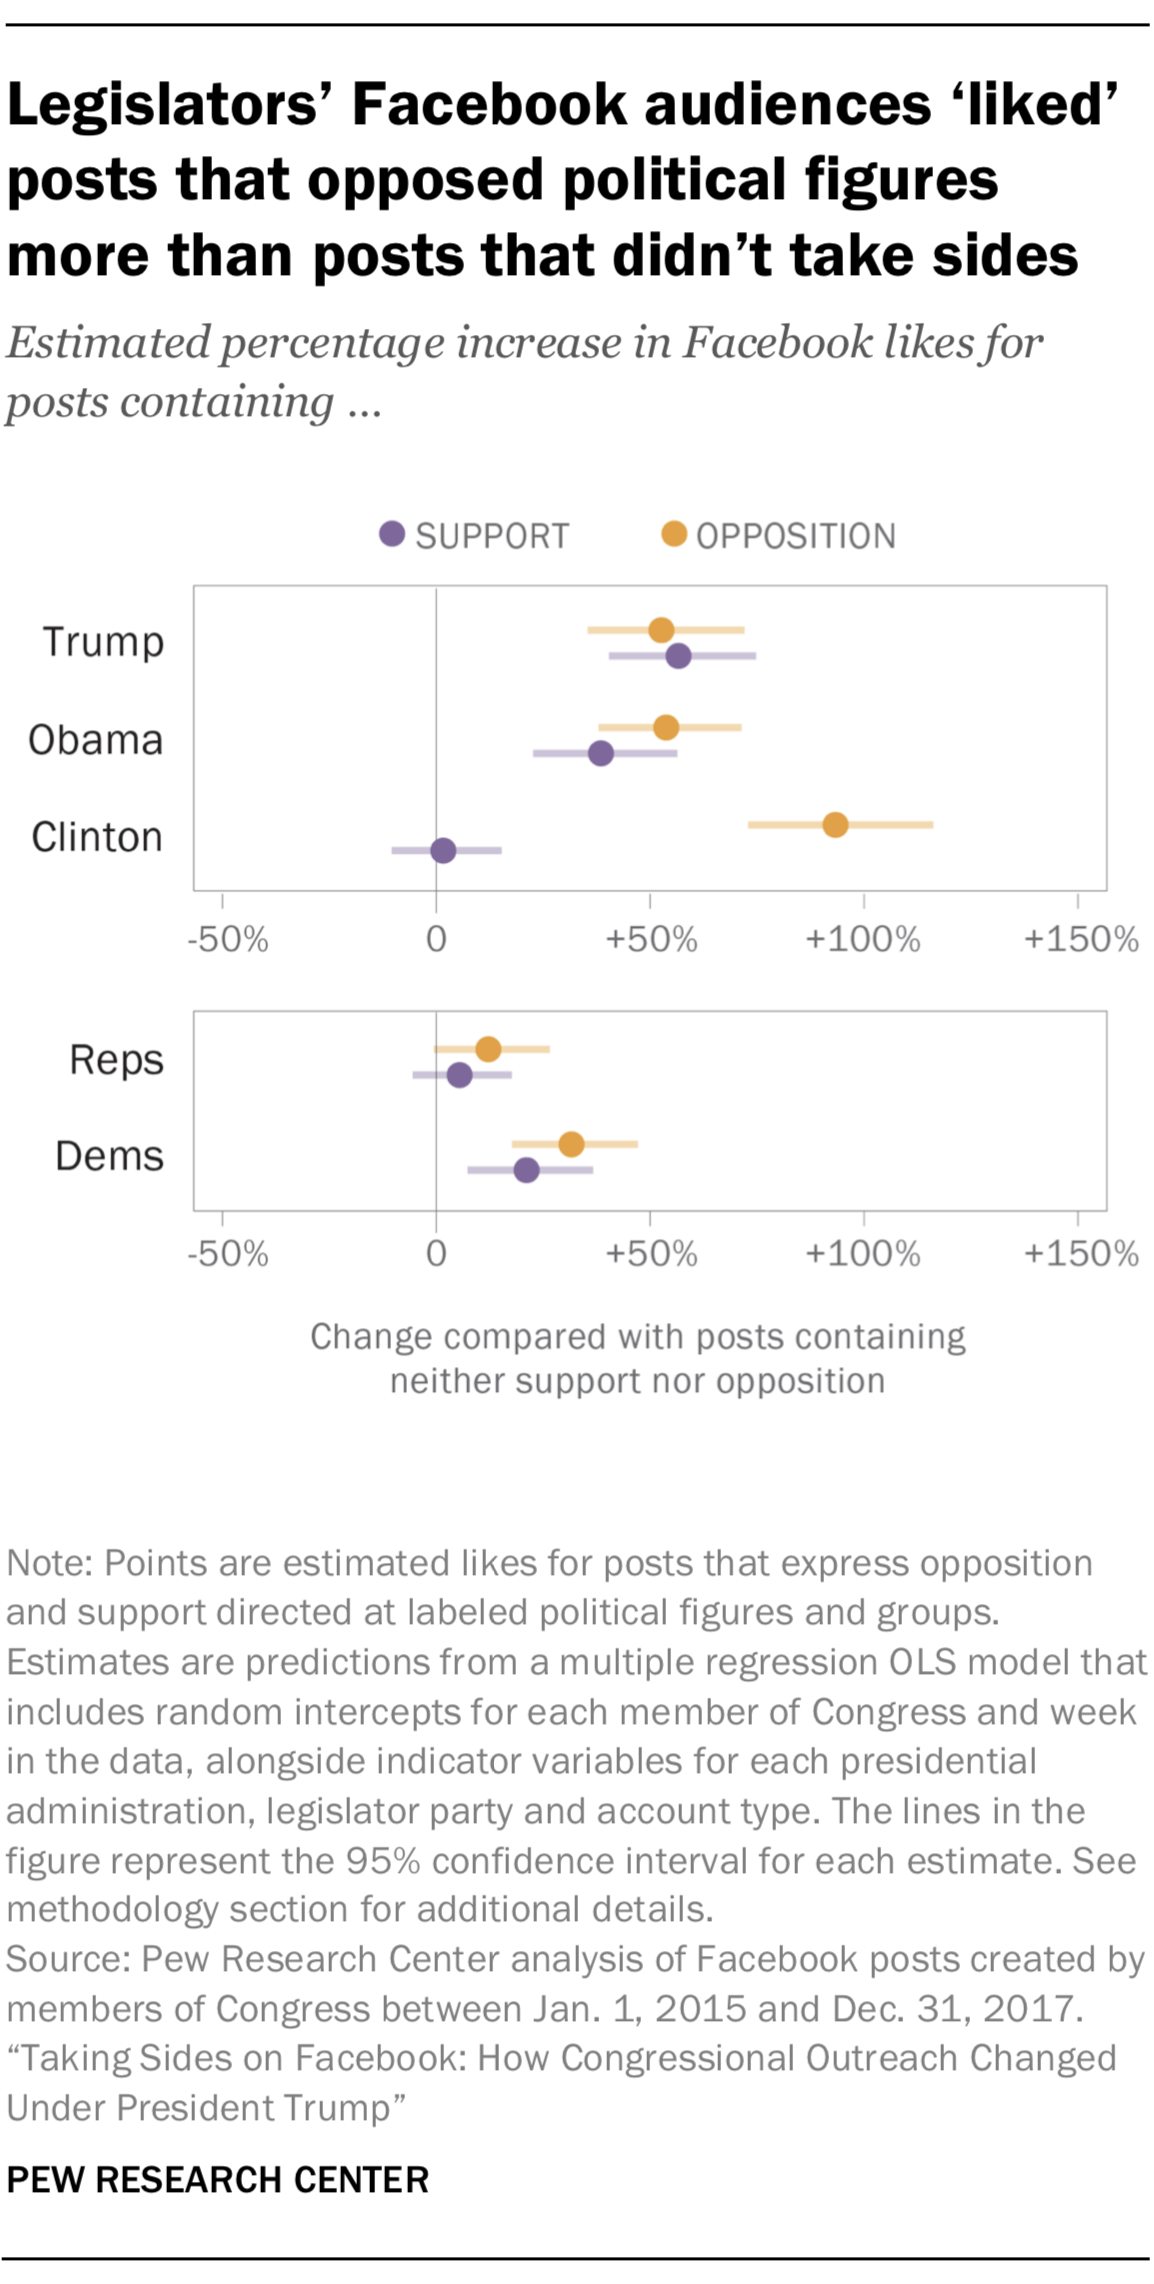 Legislators' Facebook audiences 'liked' posts that opposed political figures more than posts that didn't take sides